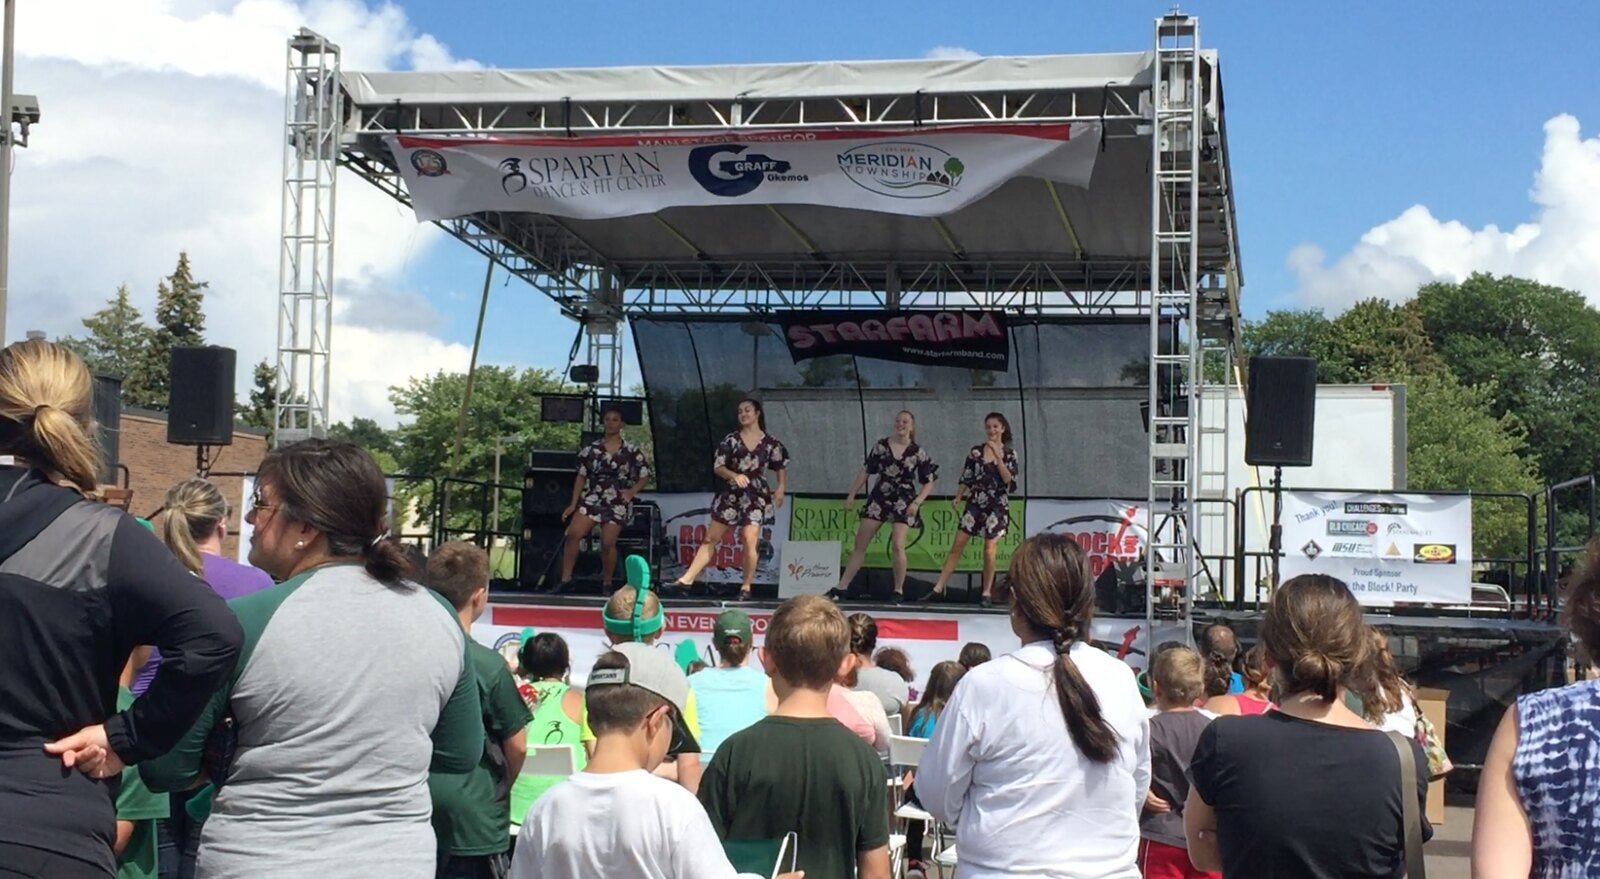 Spartan Dance and Fit Center Hosts 'Rock the Block' Event